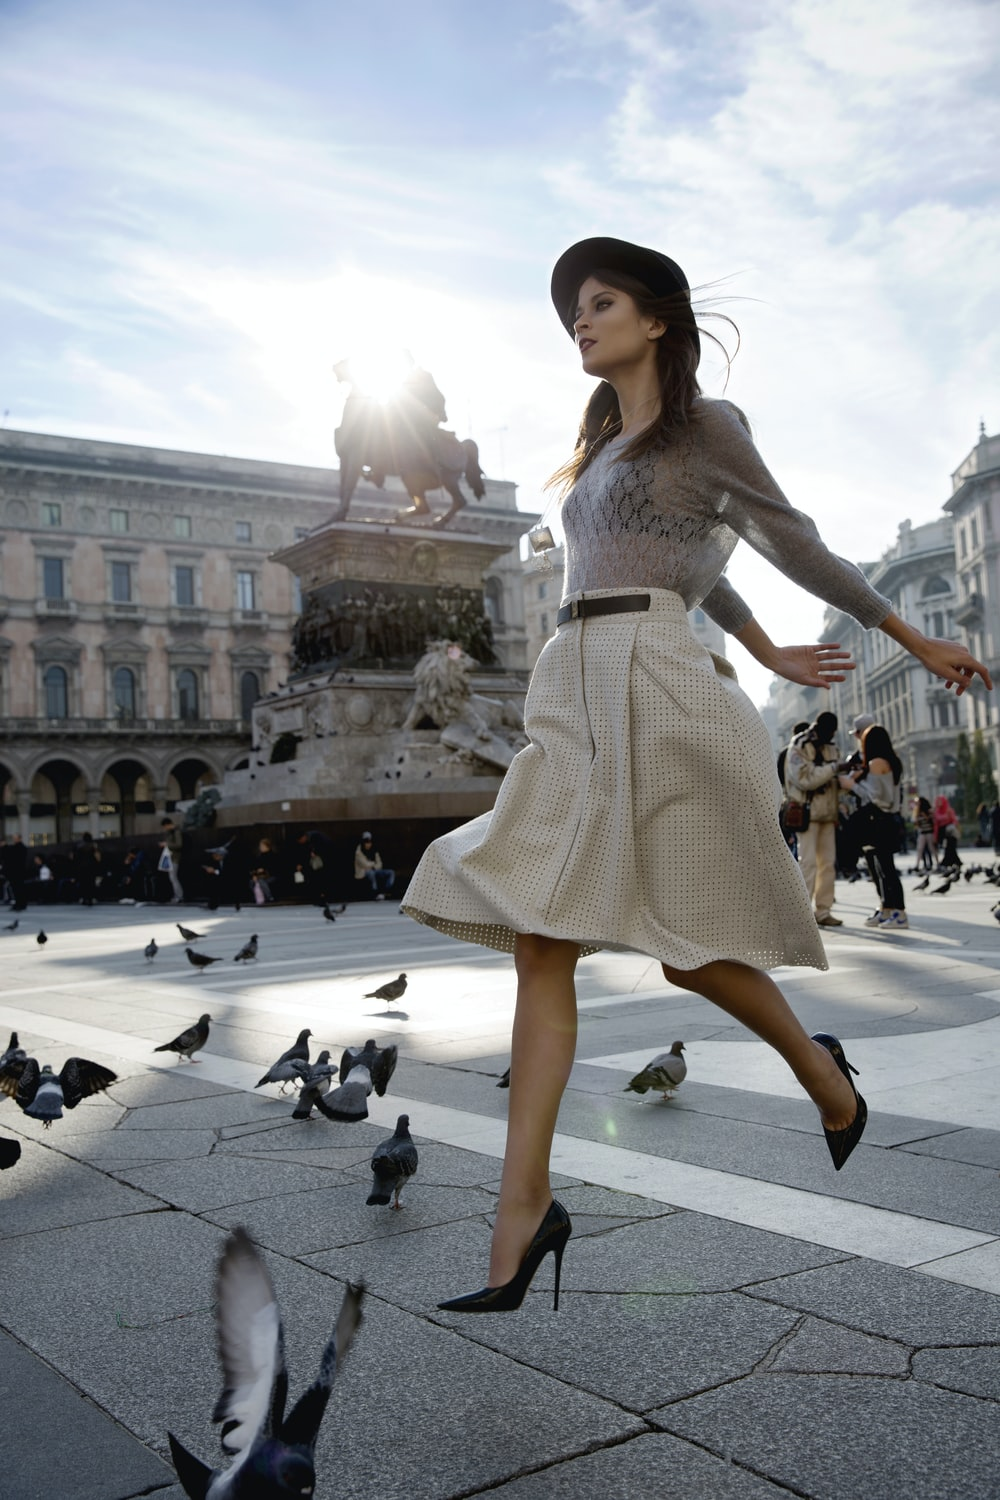 woman crossing the street among pigeons